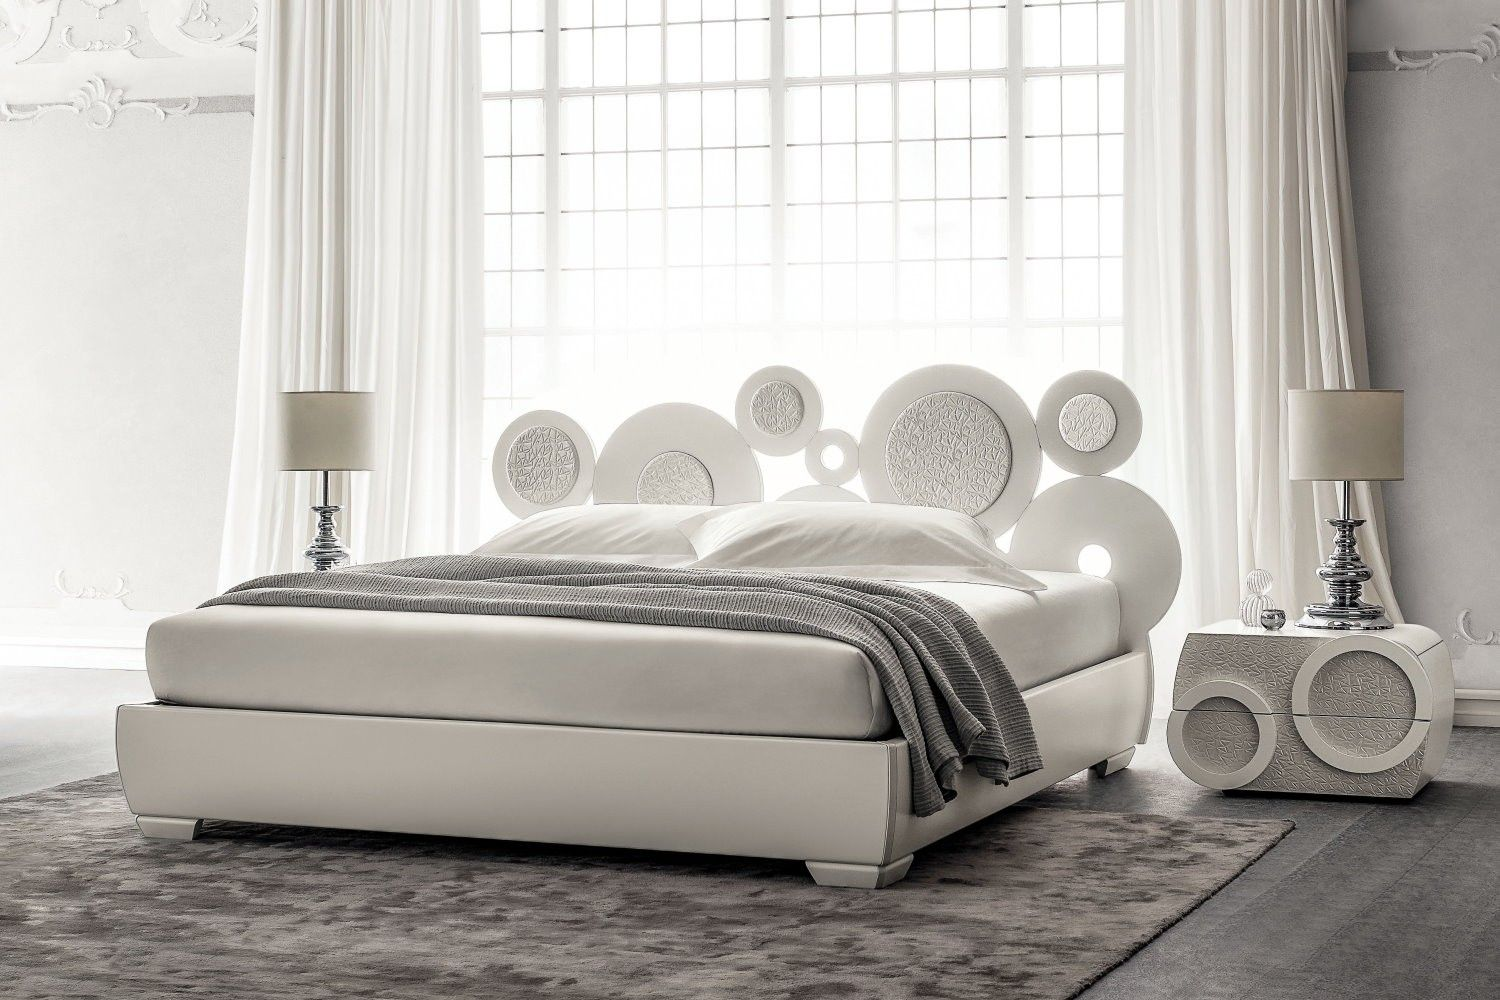 Mobilifici Lissone Camere Da Letto.Pin By Ana Puig On Gaby Bedroom Bed Design Living Room Design